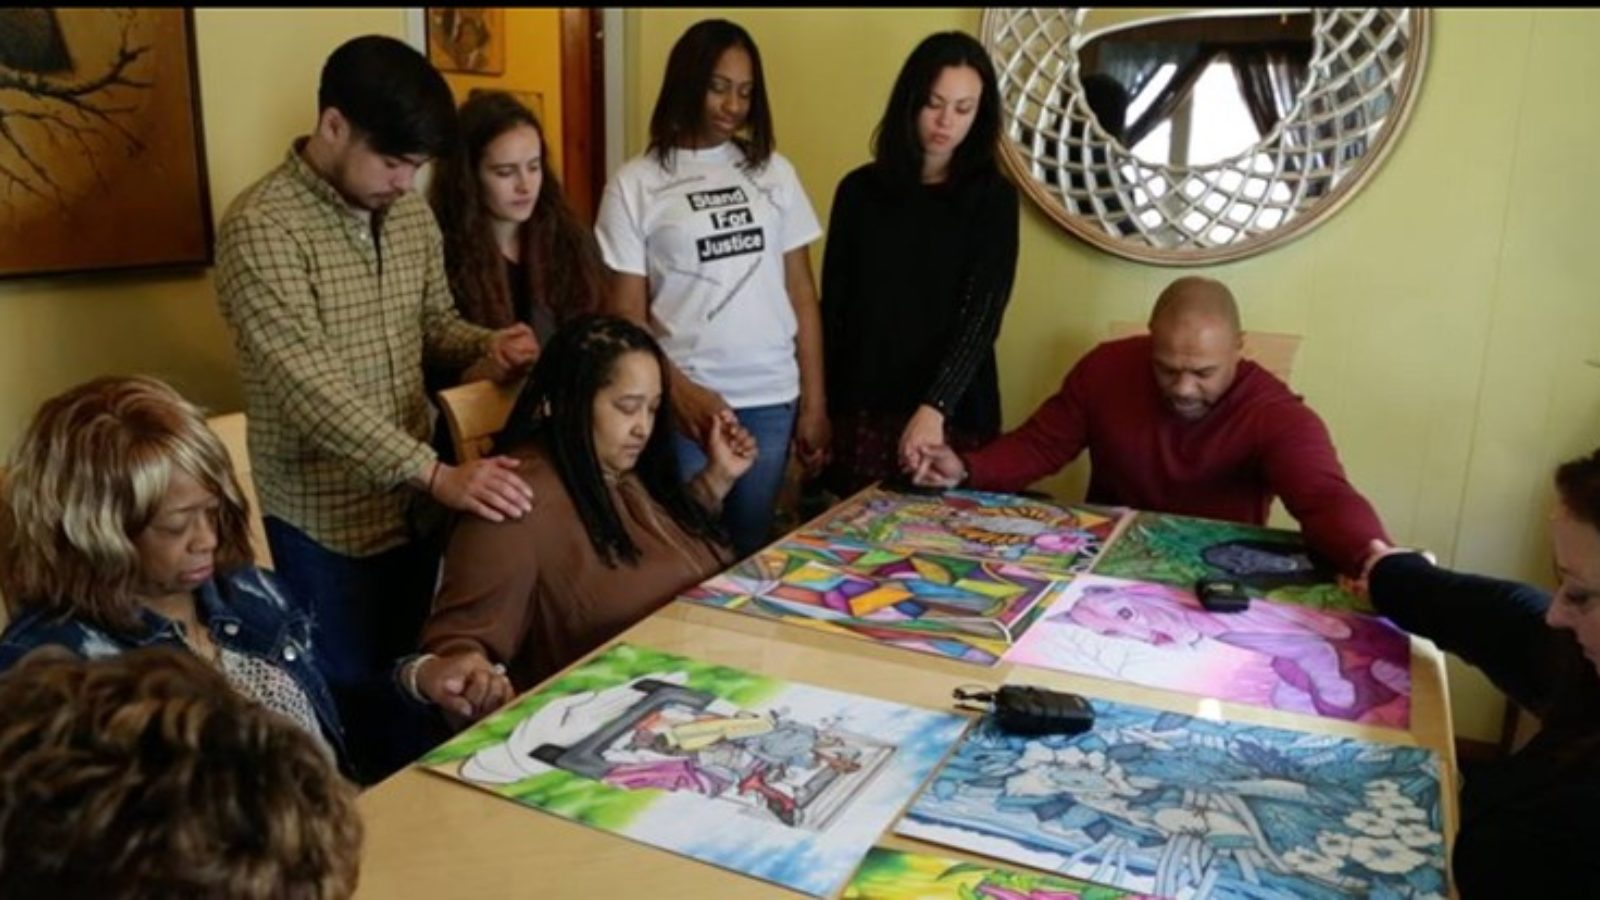 Valentino Dixon and family and Georgetown students hold hands and pray around table with Valentino Dixon's artwork